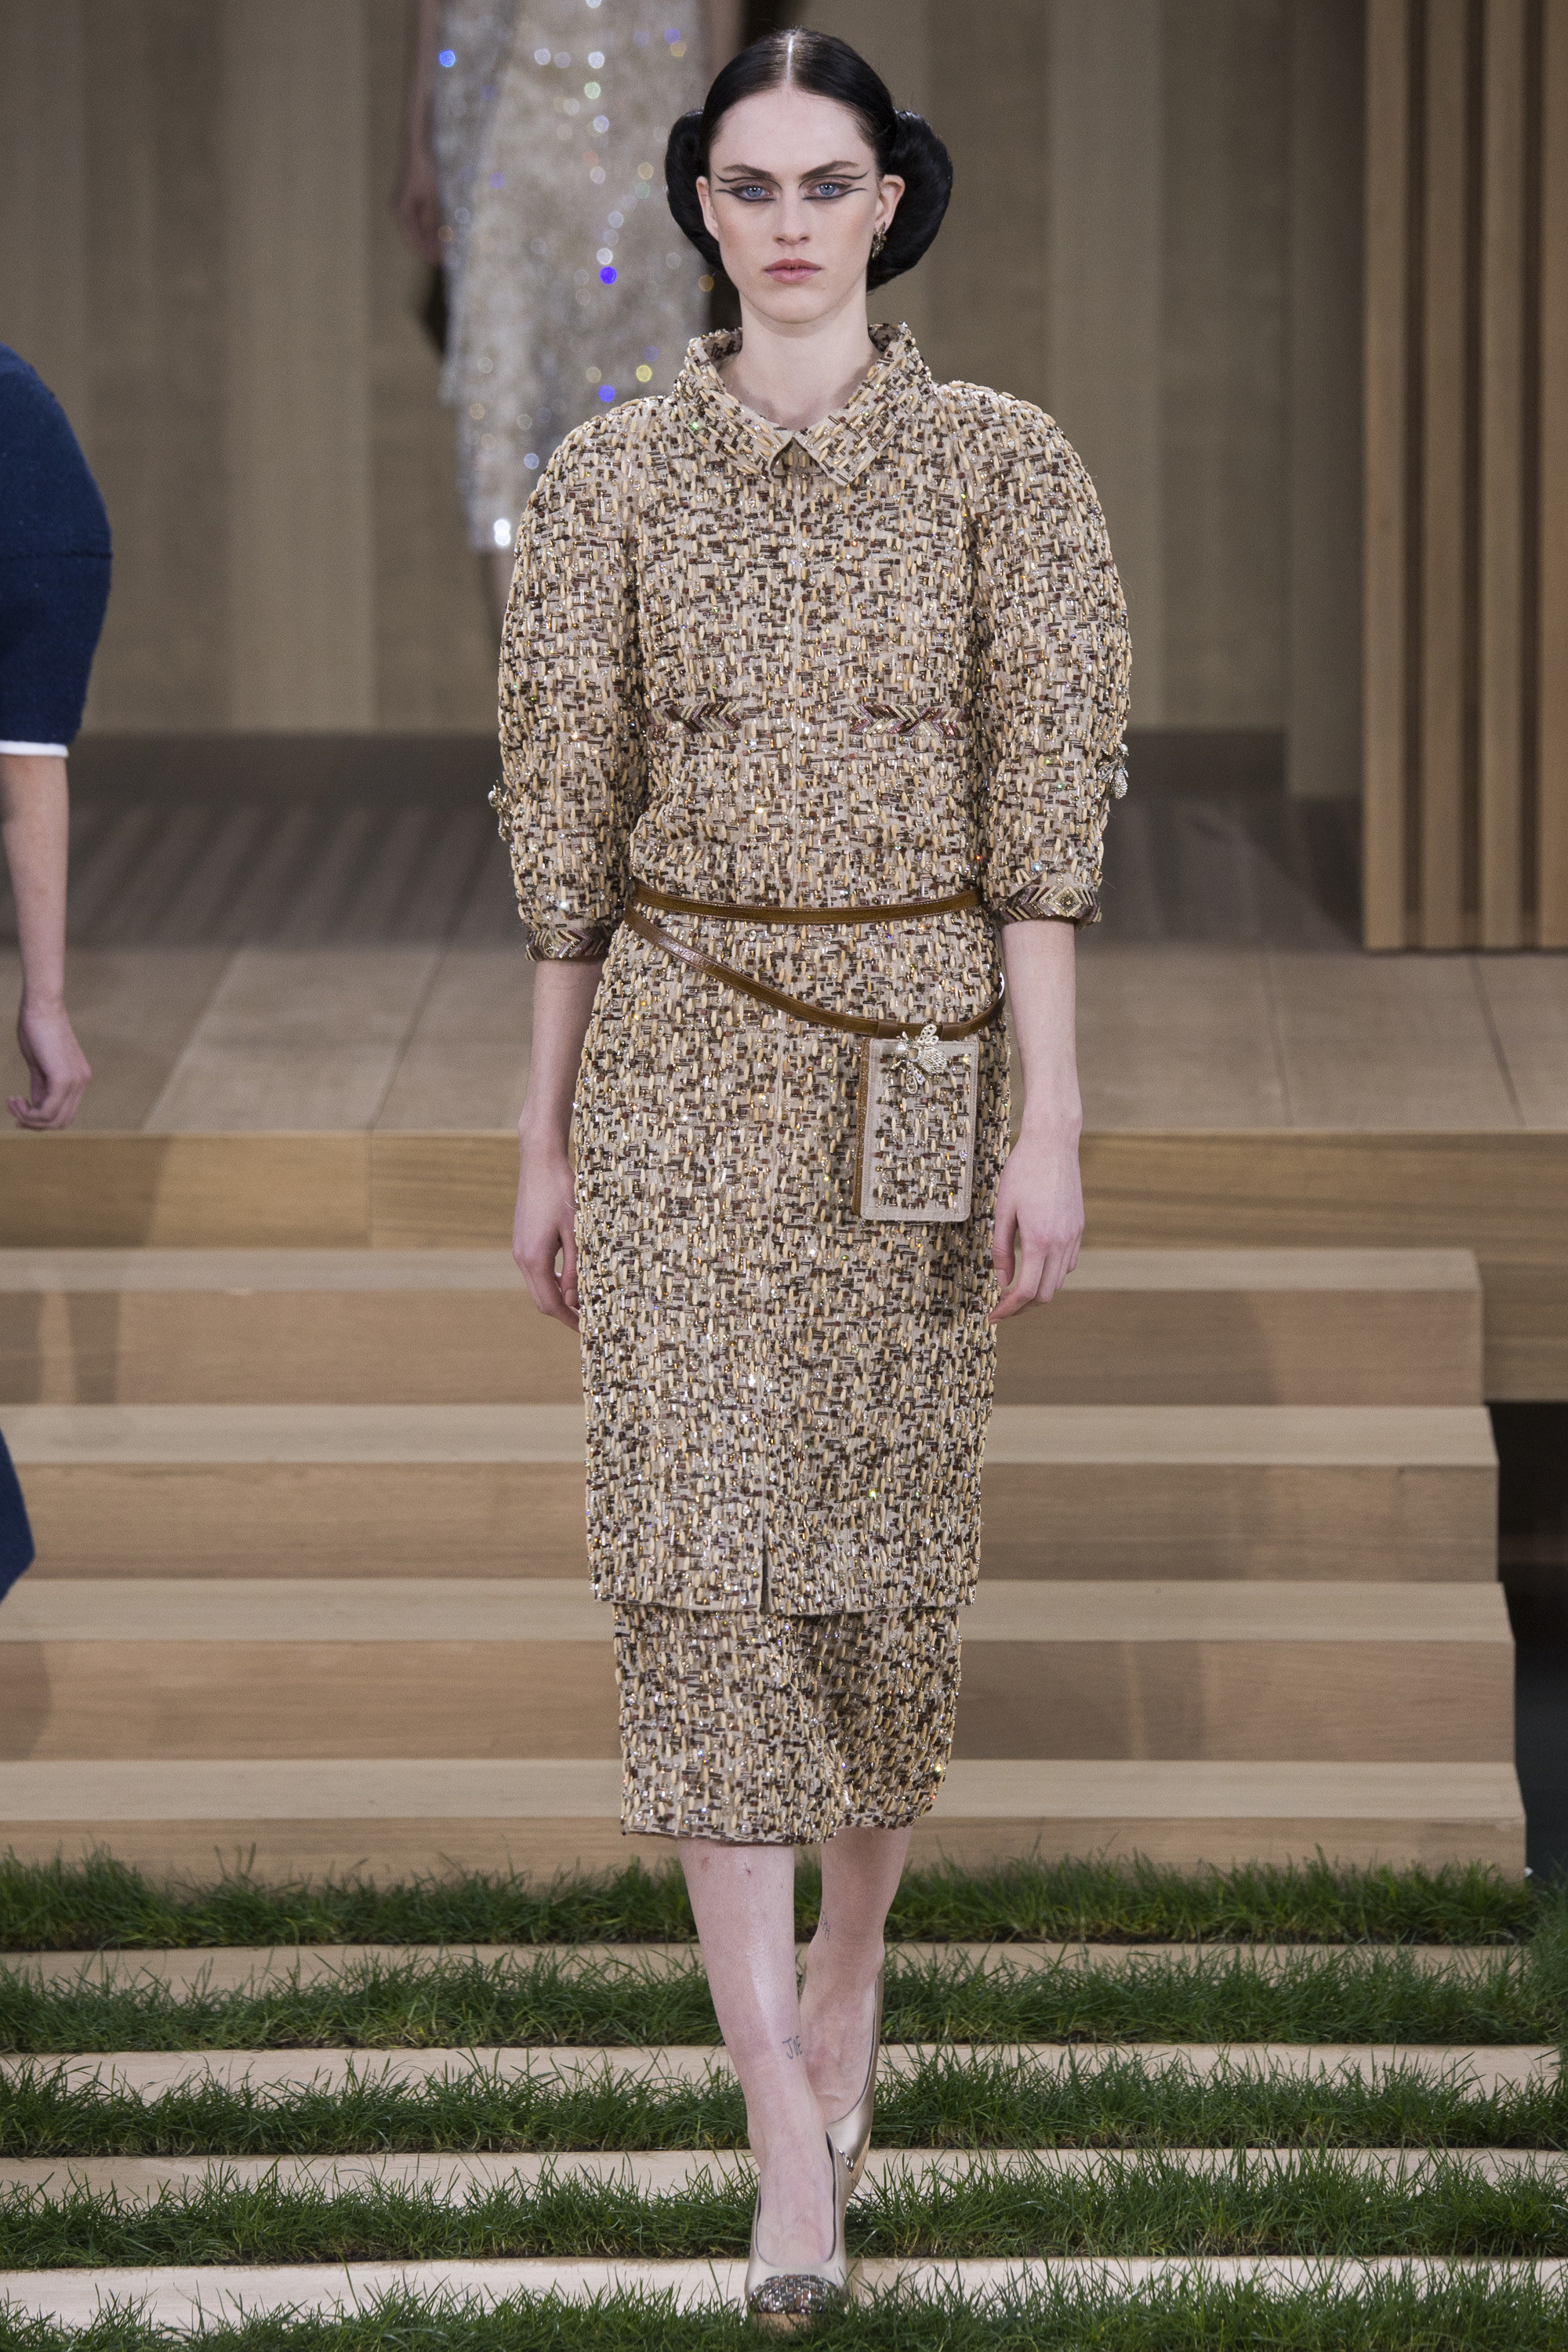 Chanel-Couture-Spring-2016-Paris-Fashion-Week-5.jpg